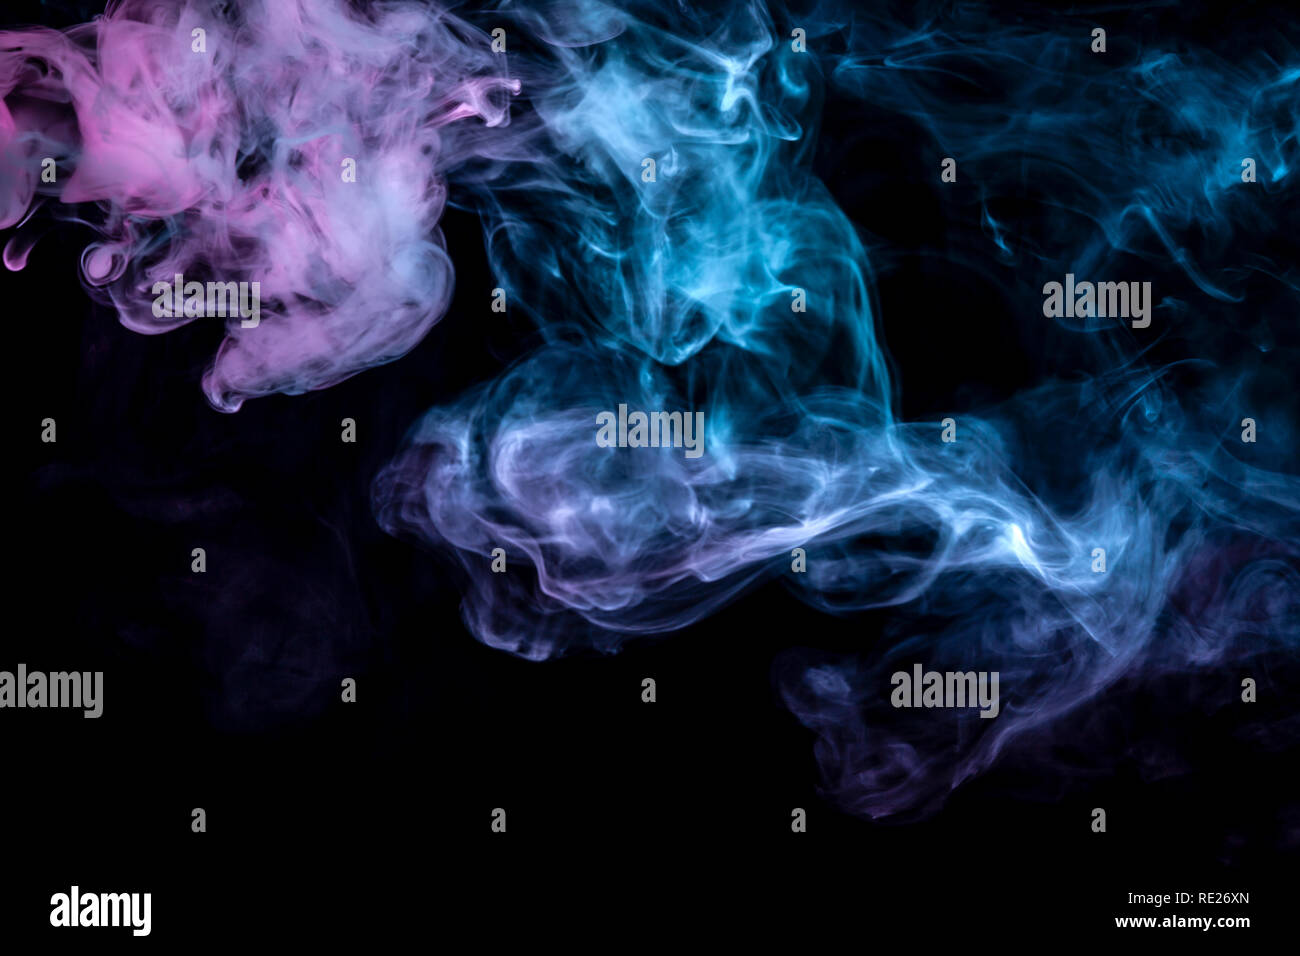 Clouds of isolated colored smoke: blue, red, green, pink; scrolling on a black background in the dark close up. Stock Photo